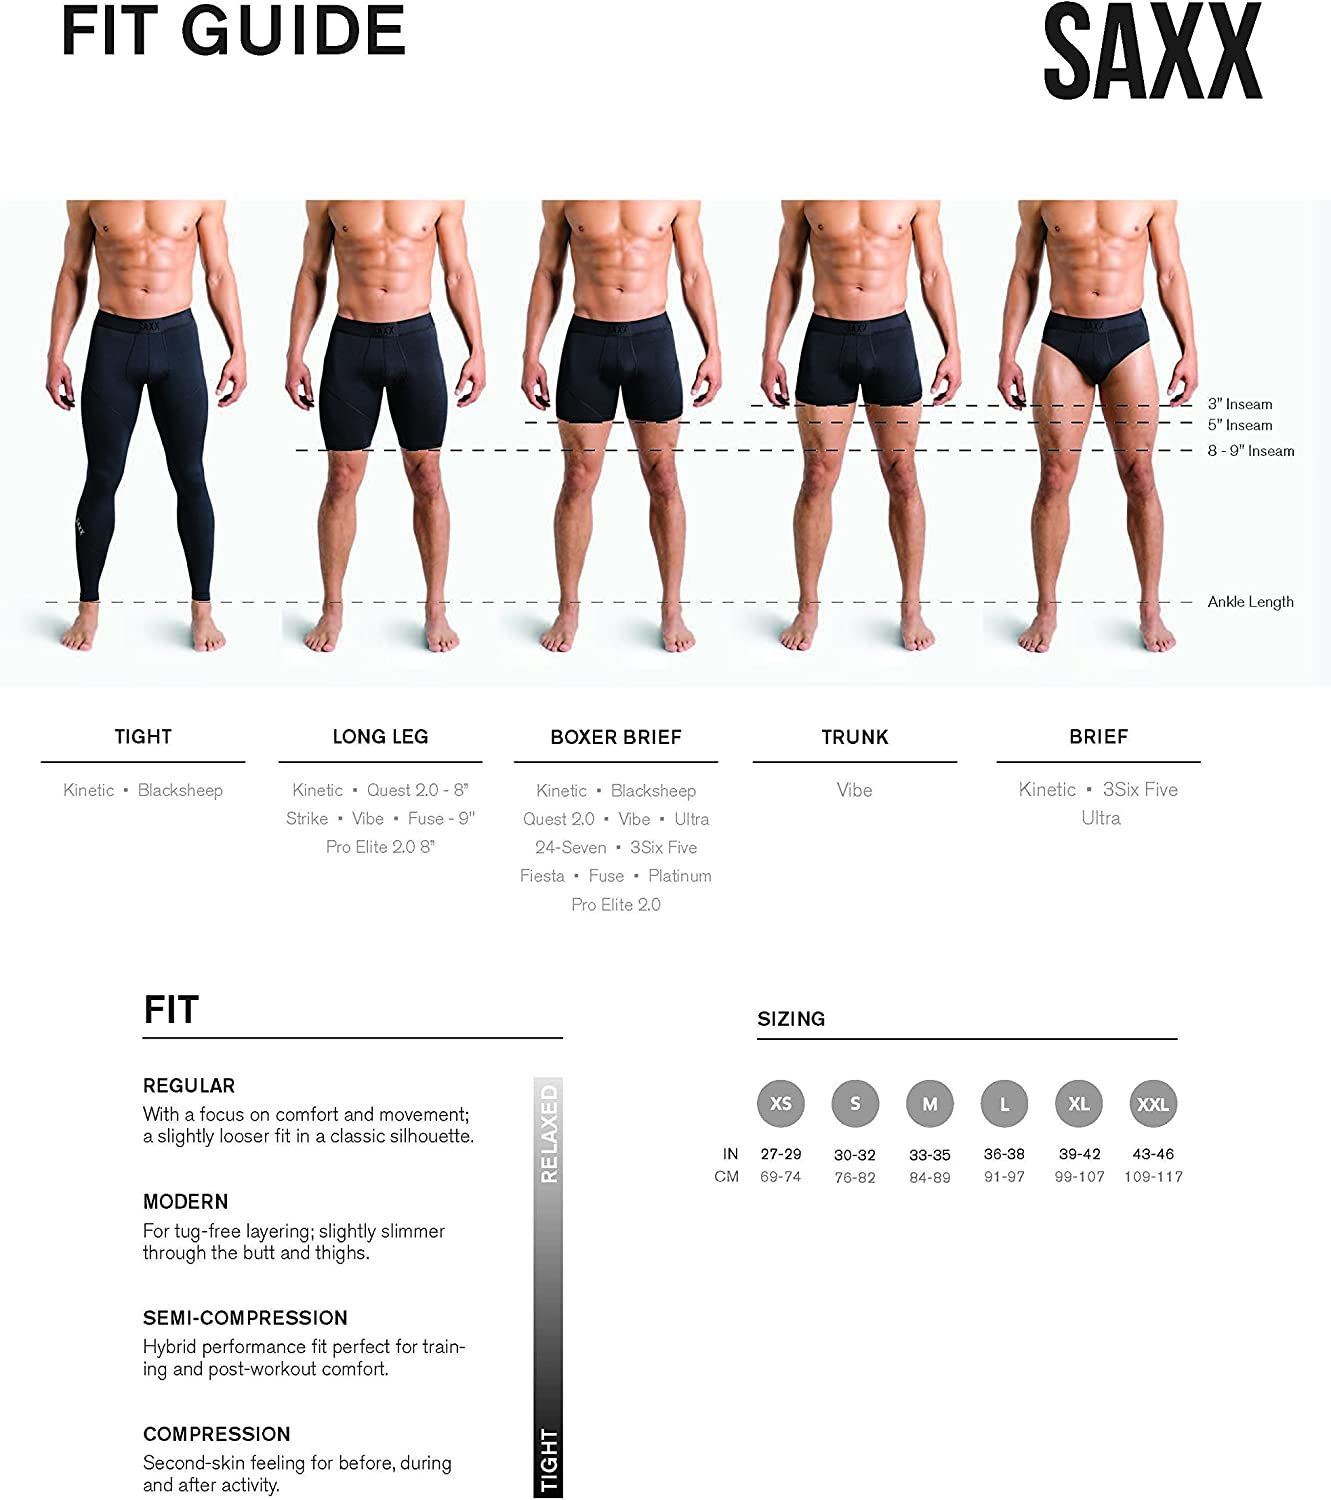 Saxx Underwear Men's Boxer Briefs- Ultra Boxer Briefs with Fly and Built-in Ballpark Pouch Support - Discontinued